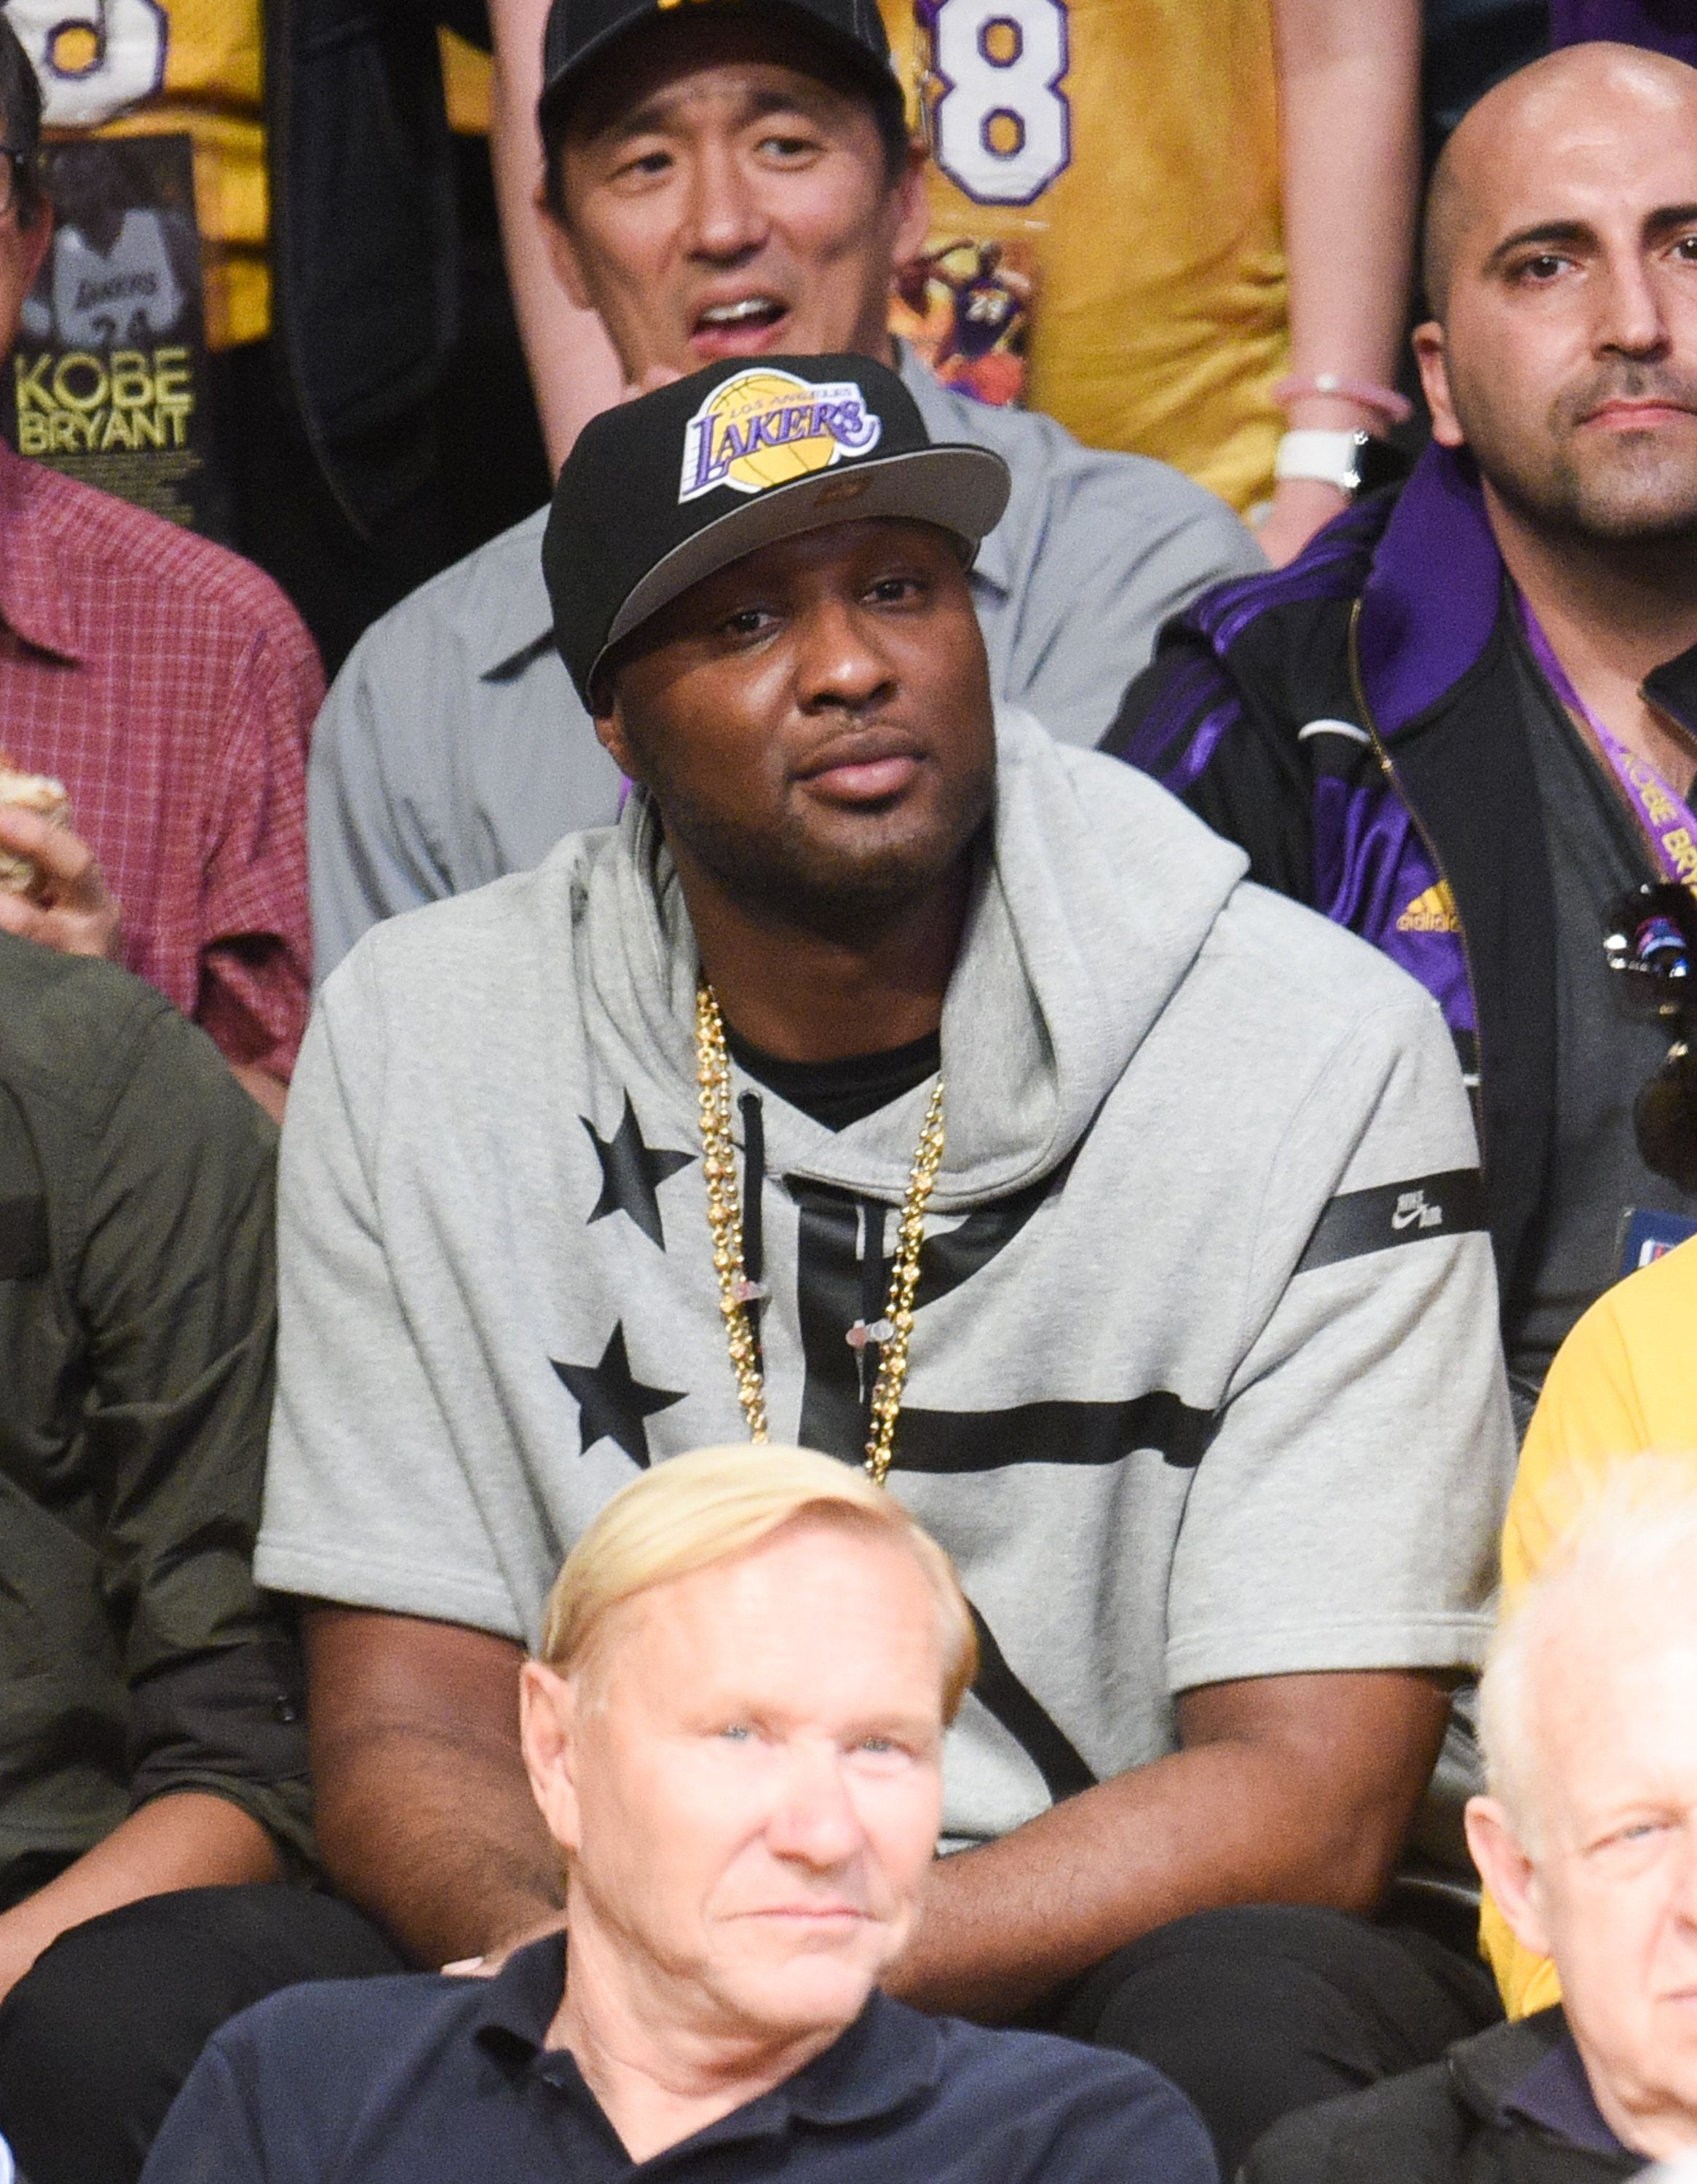 LOS ANGELES, CA - APRIL 13:  Lamar Odom attends a basketball game between the Utah Jazz and the Los Angeles Lakers at Staples Center on April 13, 2016 in Los Angeles, California.  (Photo by Noel Vasquez/GC Images)